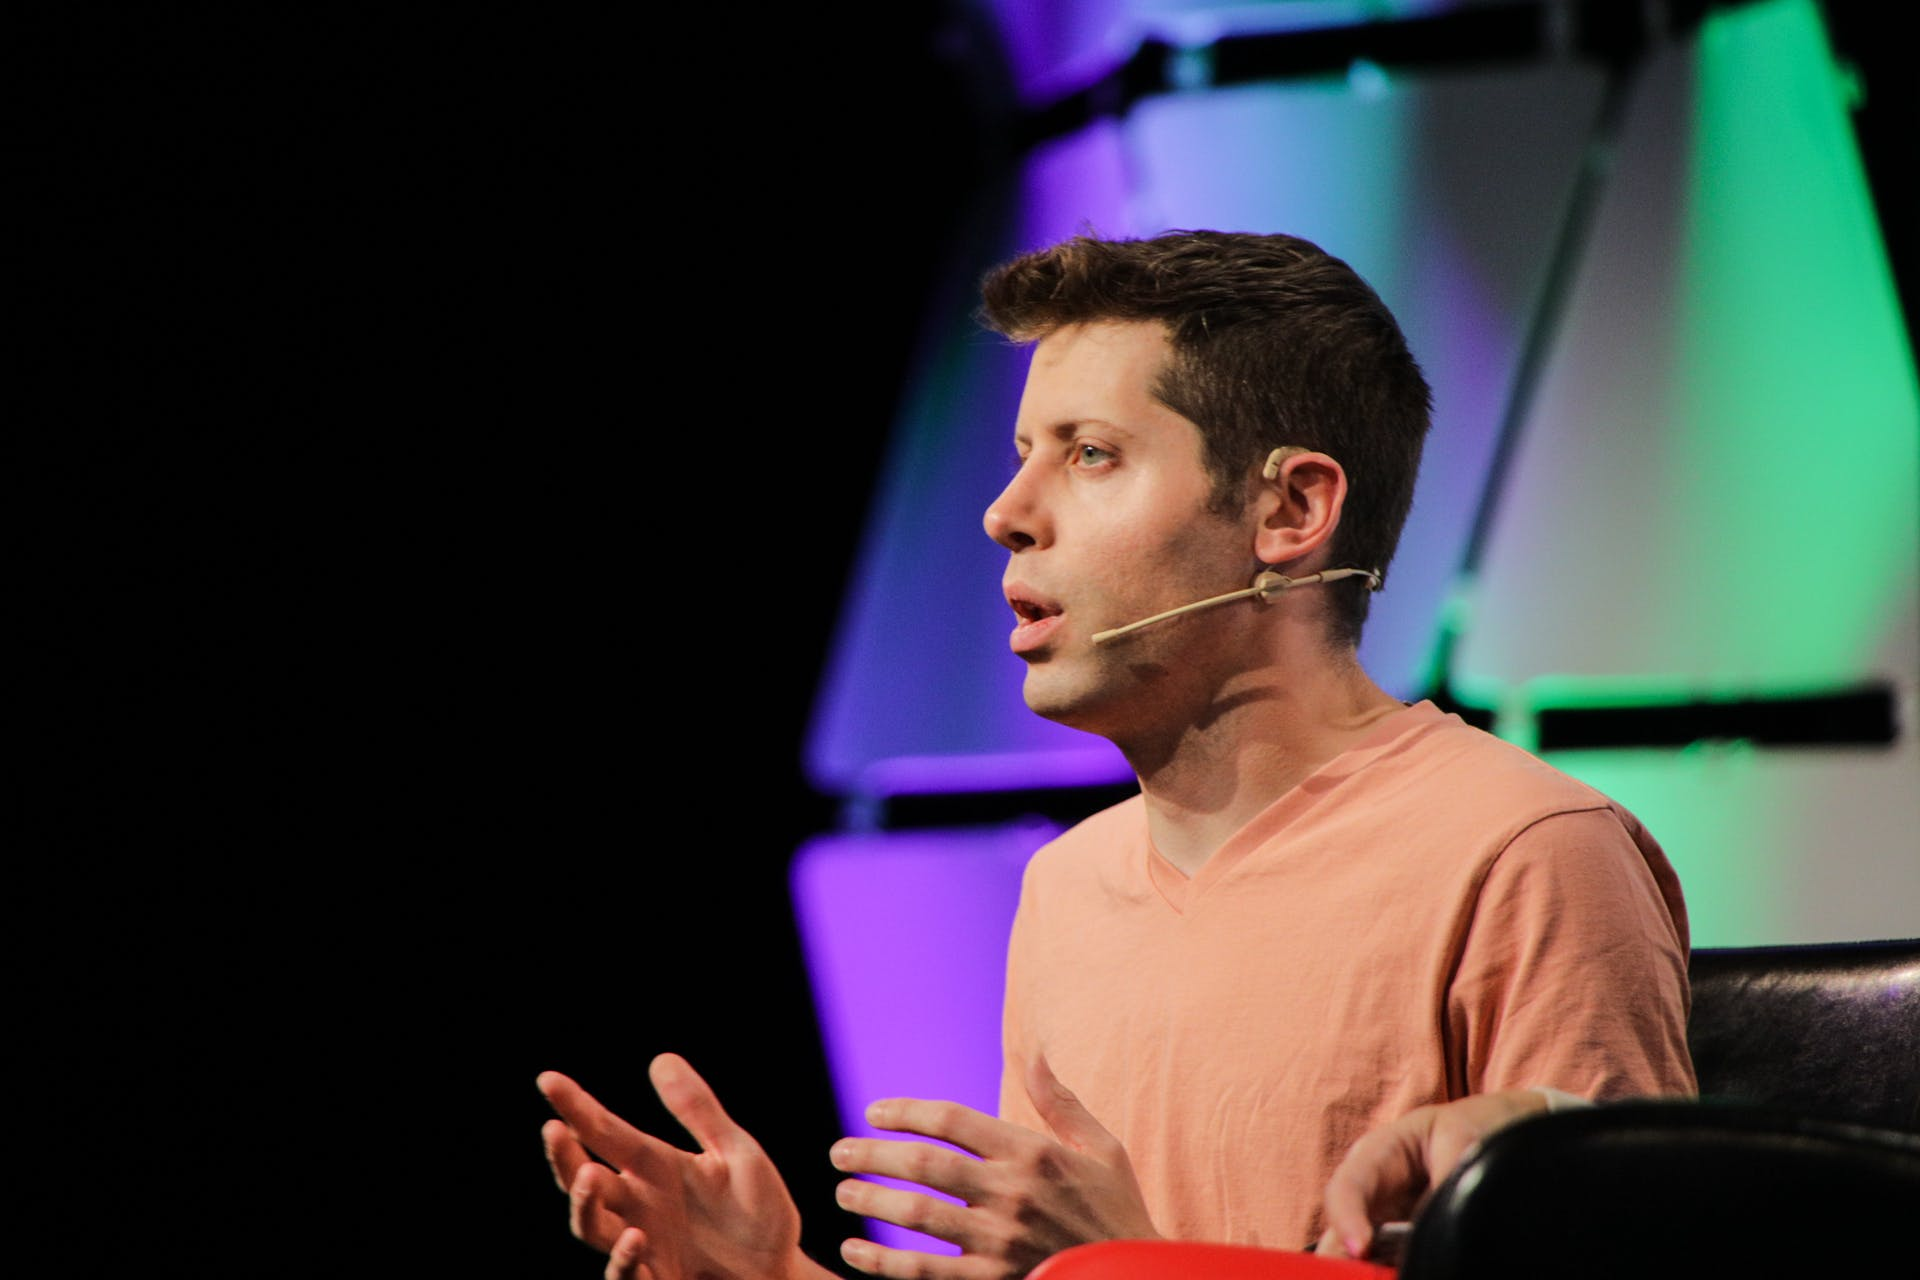 SAM ALTMAN: CARING TOO MUCH MAKES YOU A SHEEP